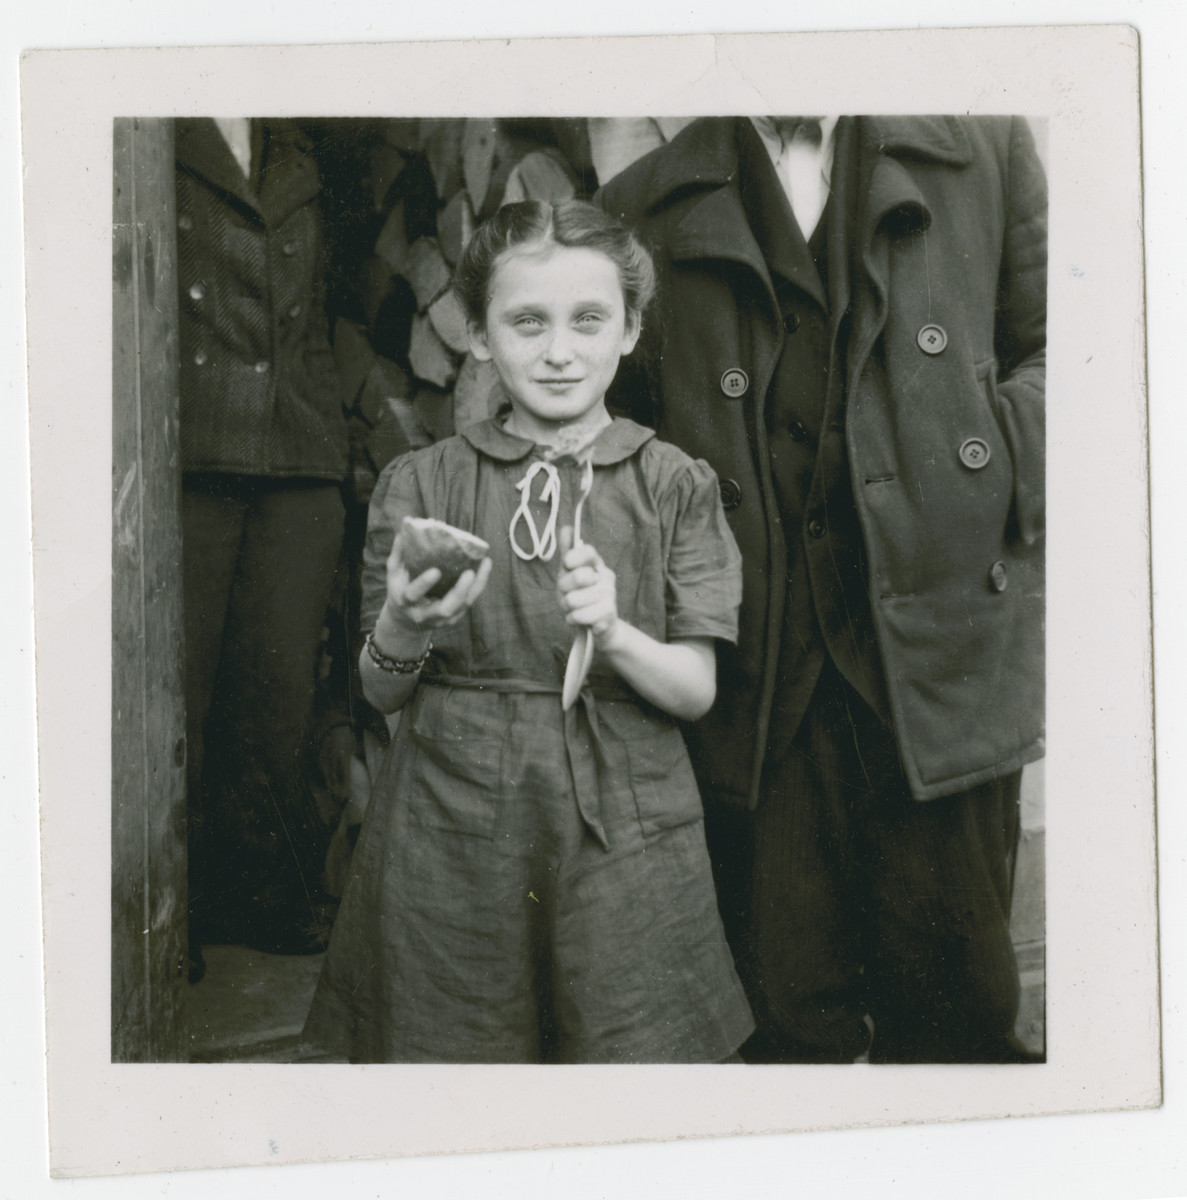 """A young girl in the Ziegenhain displaced persons camp shows off her dinner.  The original caption reads: """"Ziegenhain.  Little Jewish girl shows her dinner.  That is a 'piece' of meat at the end of her fork.  See it?"""""""